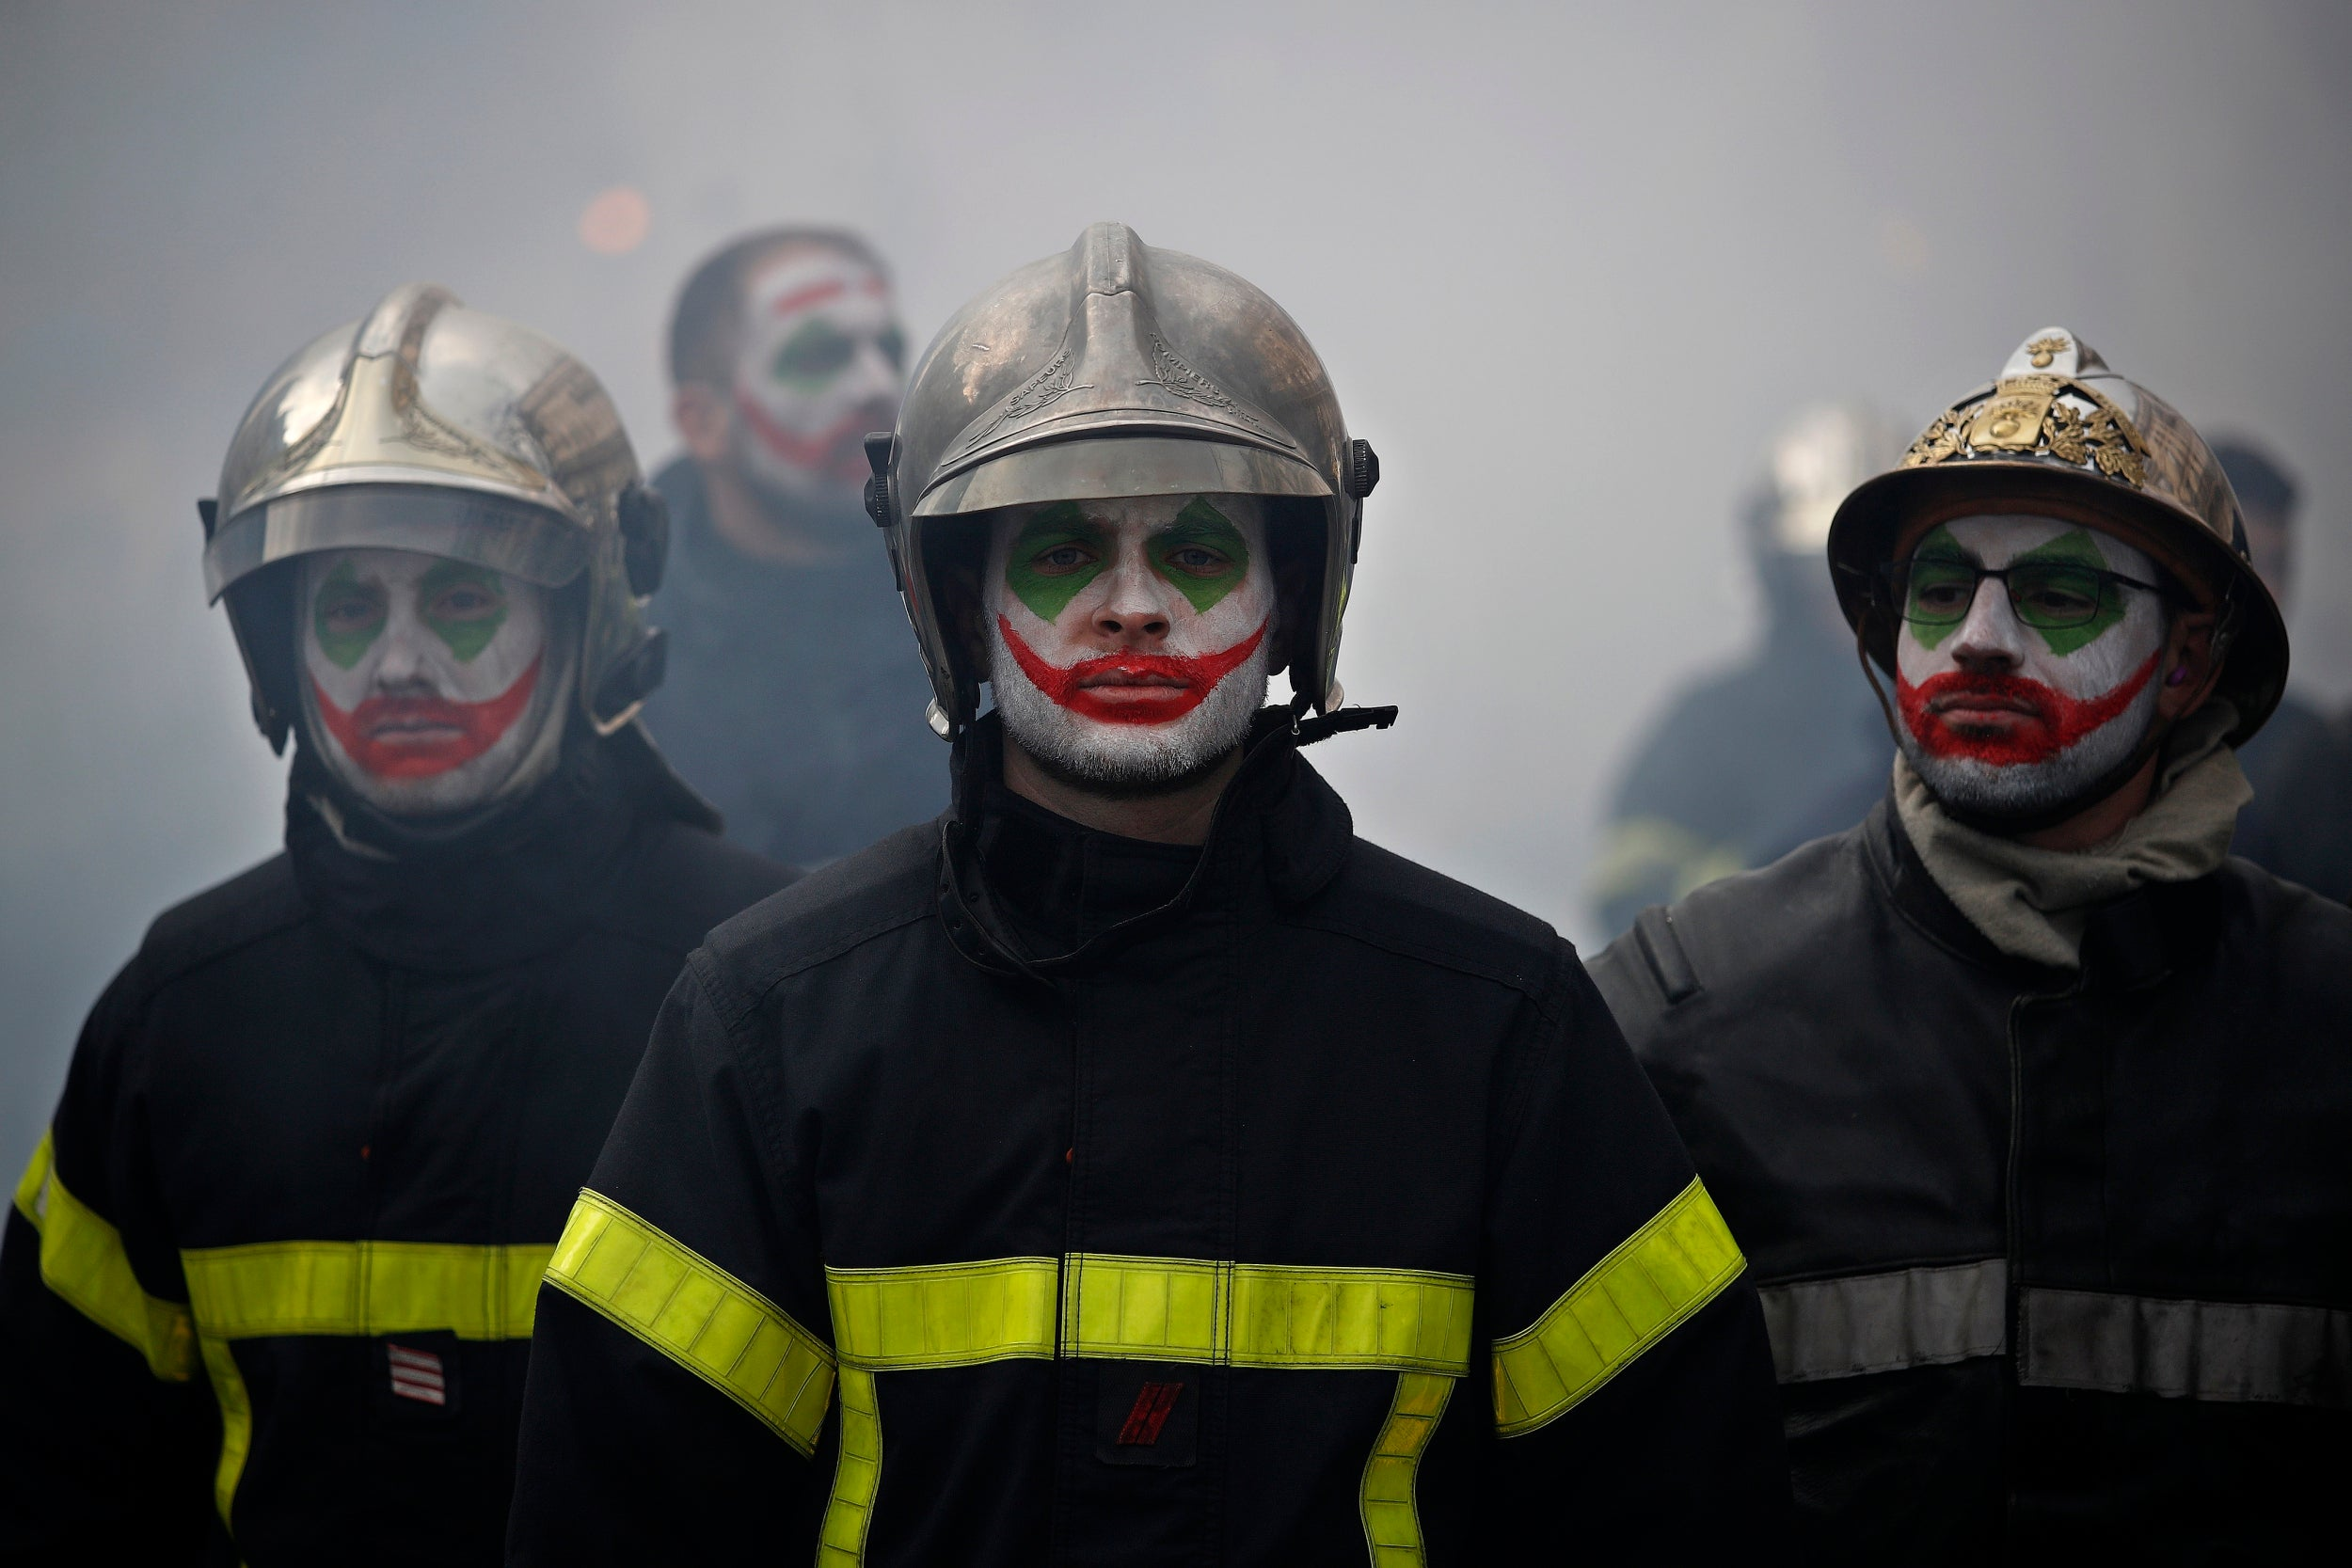 Joker Firefighter